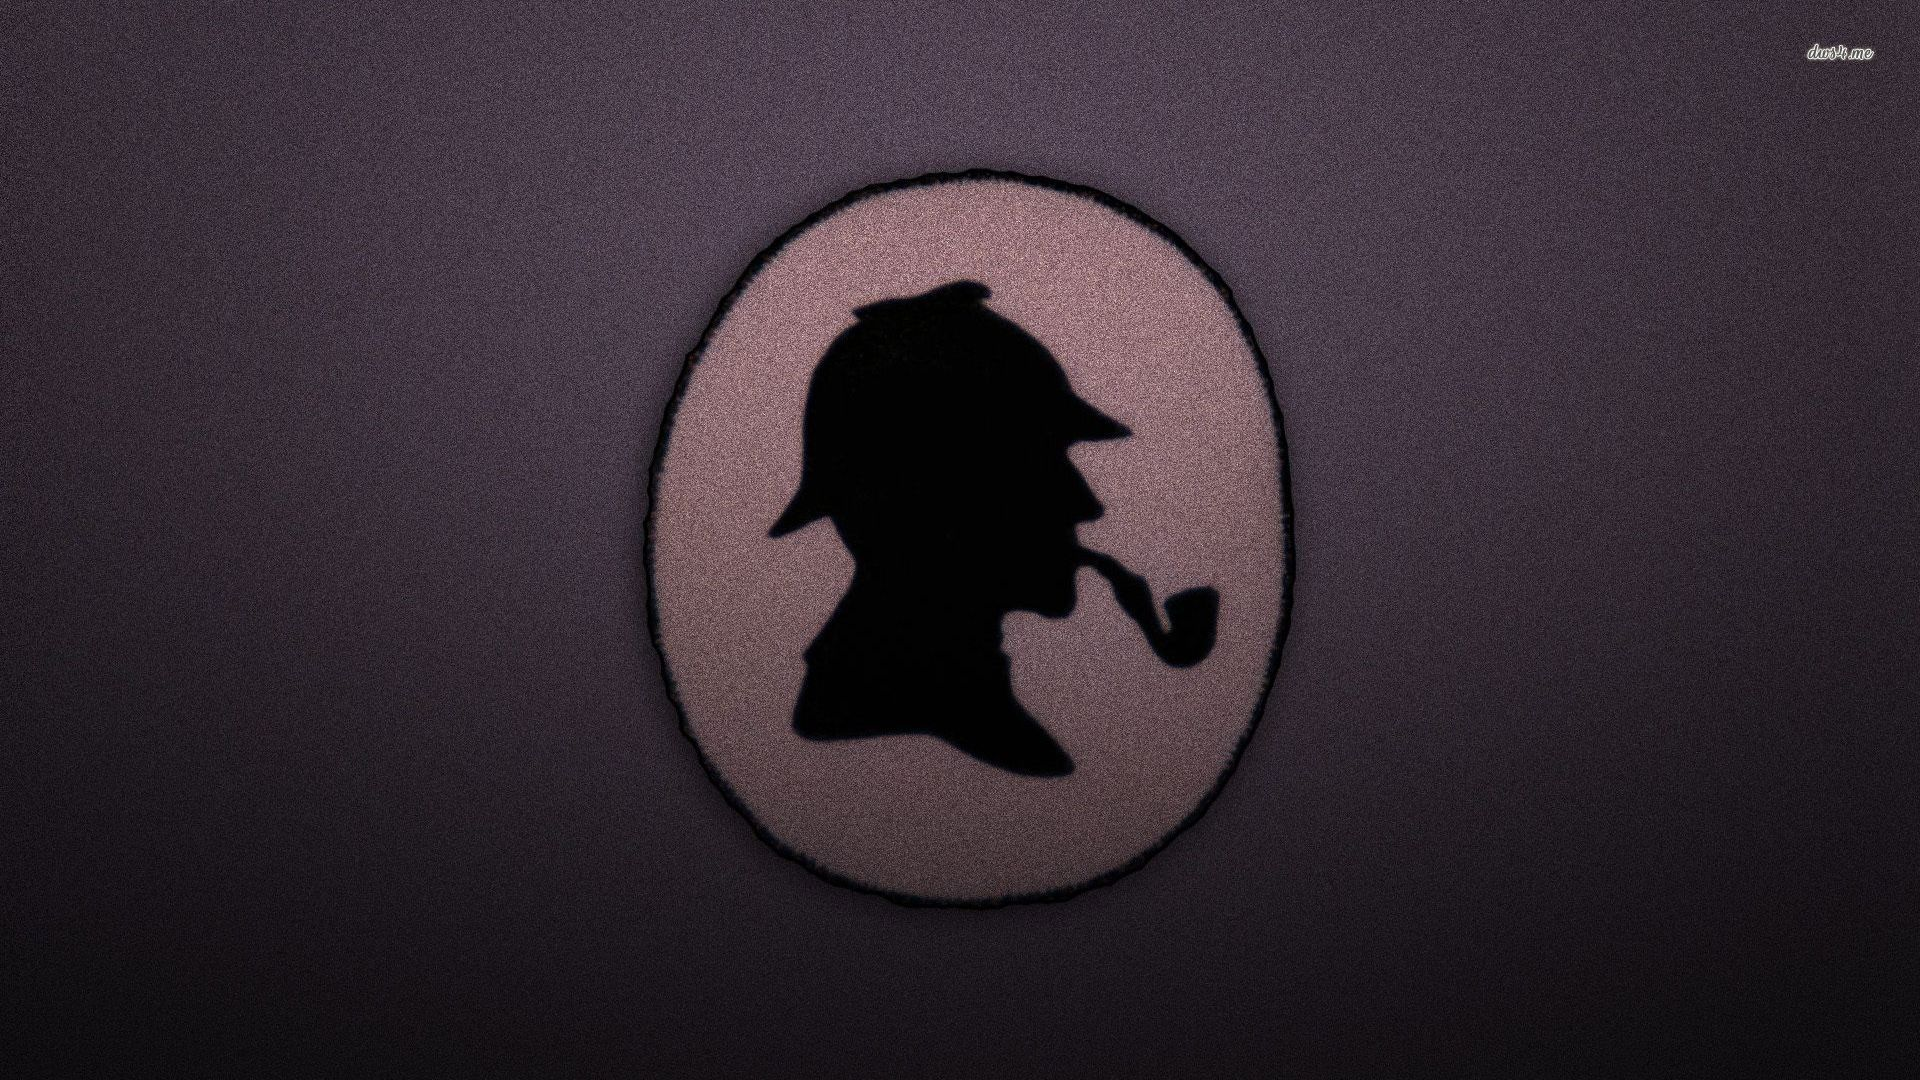 Sherlock Holmes Wallpaper Phone Illustrations Blog Pinterest